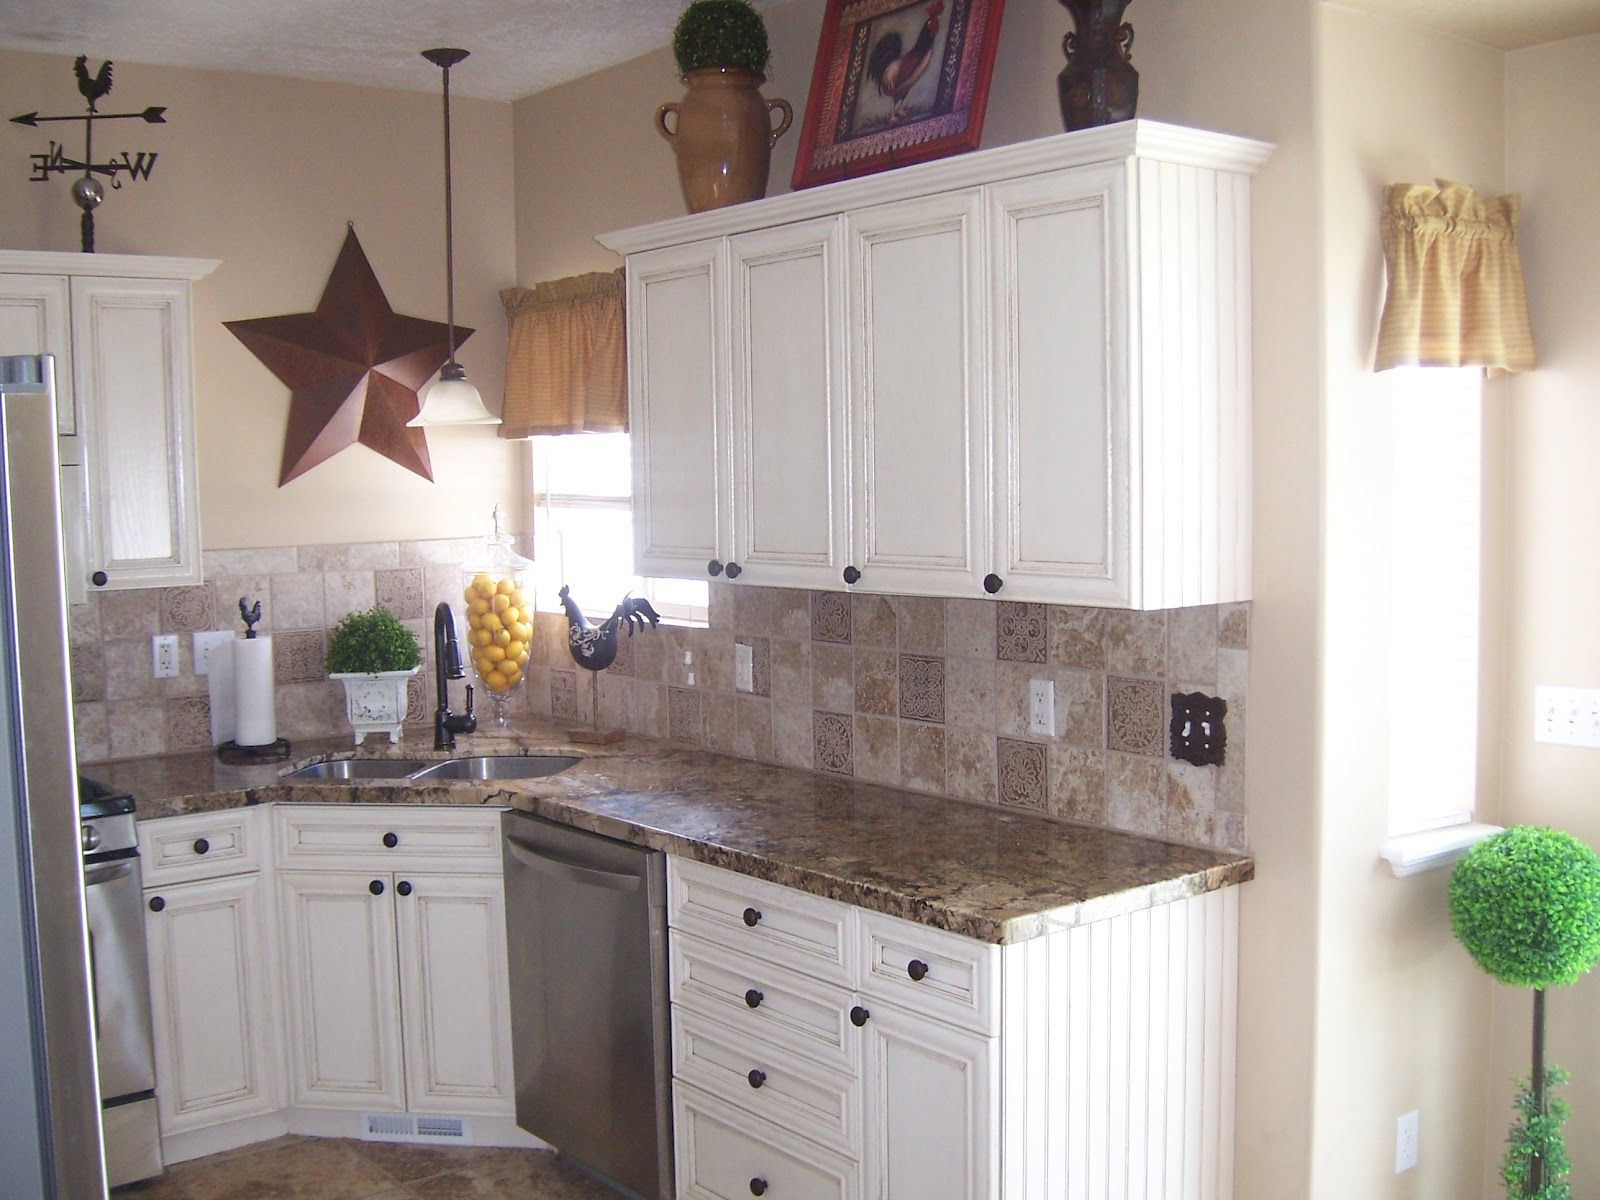 laminate kitchen countertops white cabinets with laminate countertops Laminate counter tops were replaced with a beautiful granite